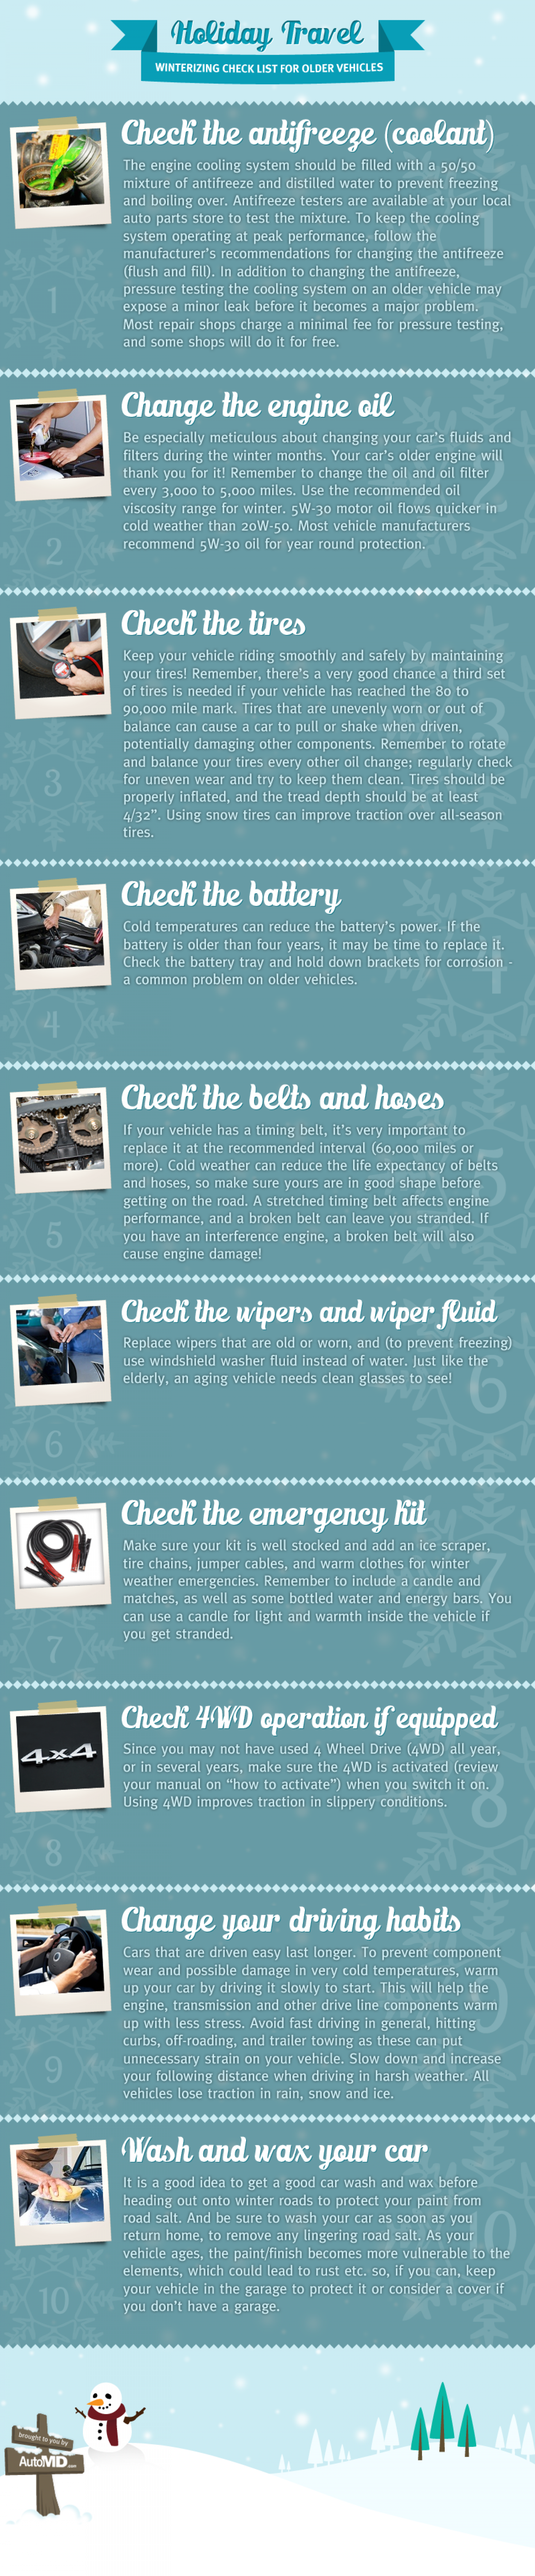 Winterize Your Vehicle Infographic